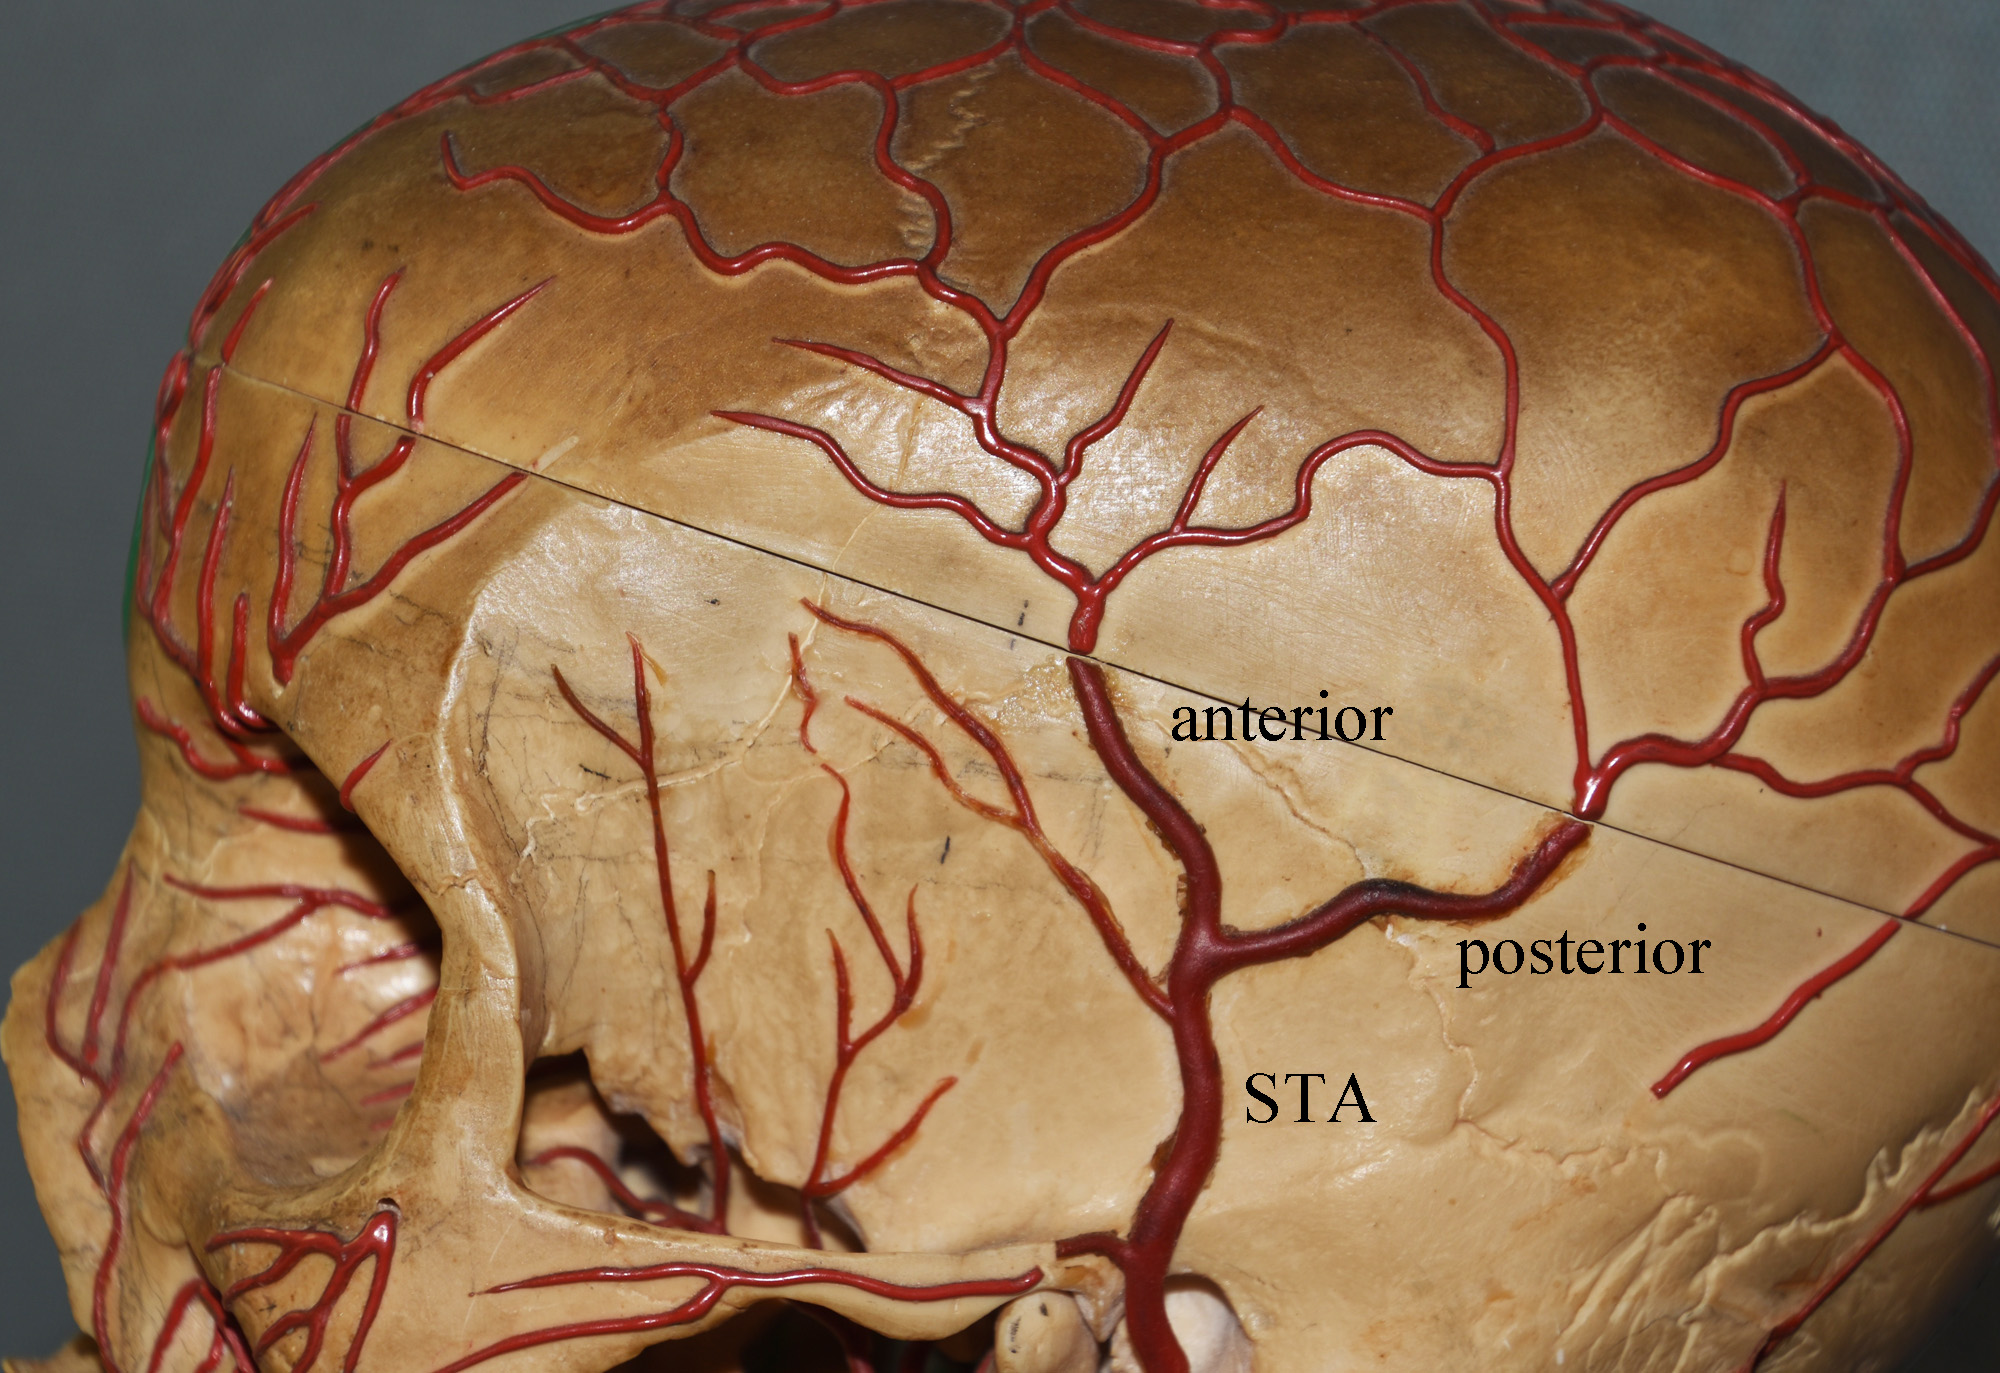 Blog ArchiveThe Anatomy of Aesthetic Temporal Artery Ligation -